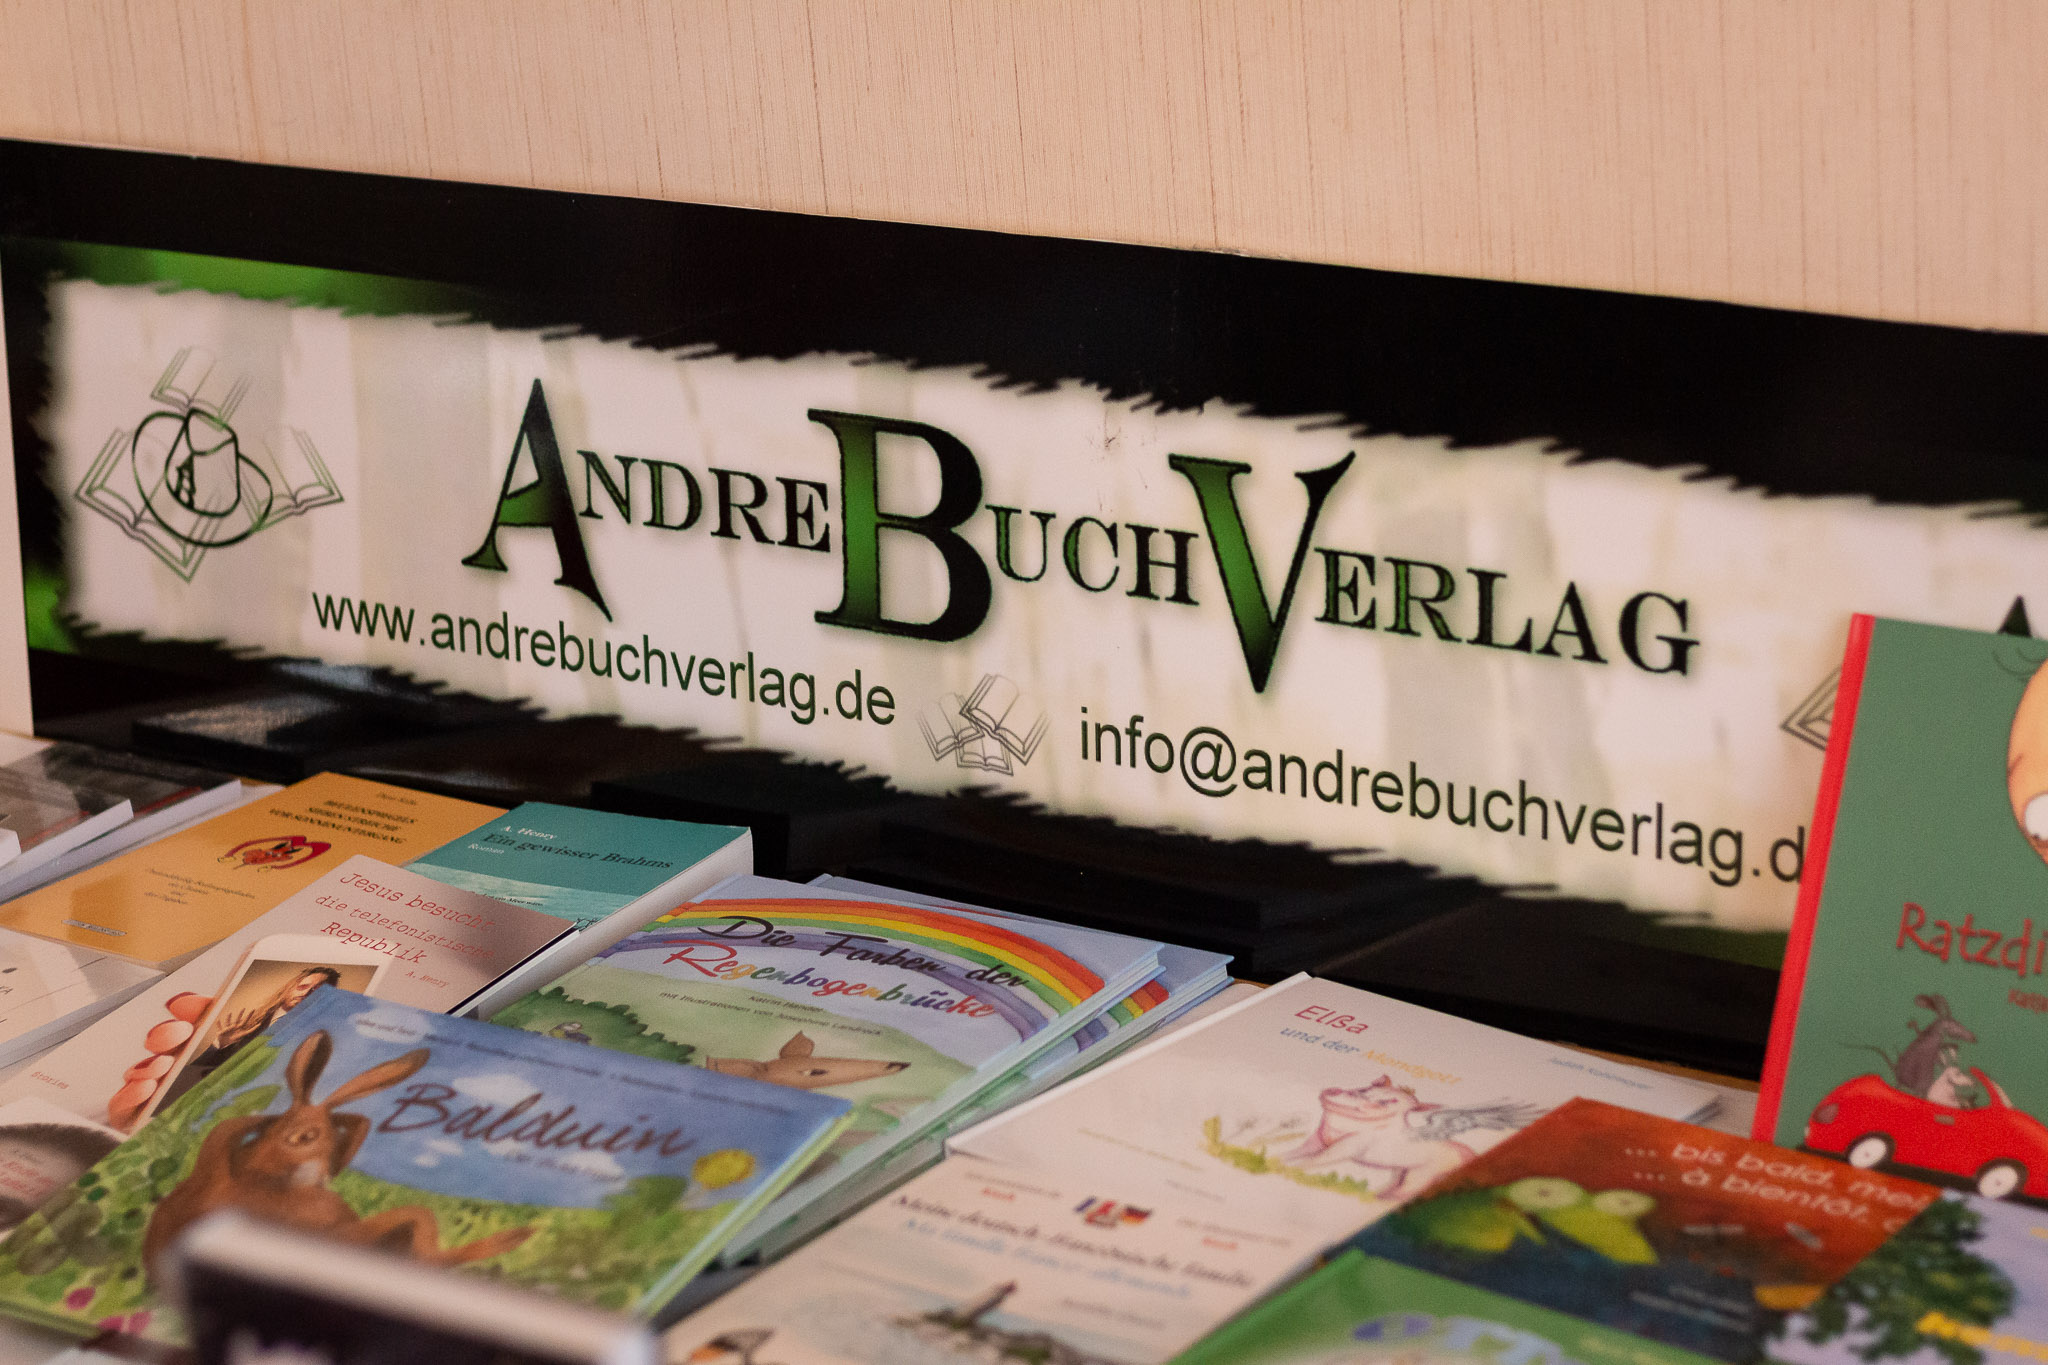 Andere Buchmesse Wien: Andre Buch Verlag